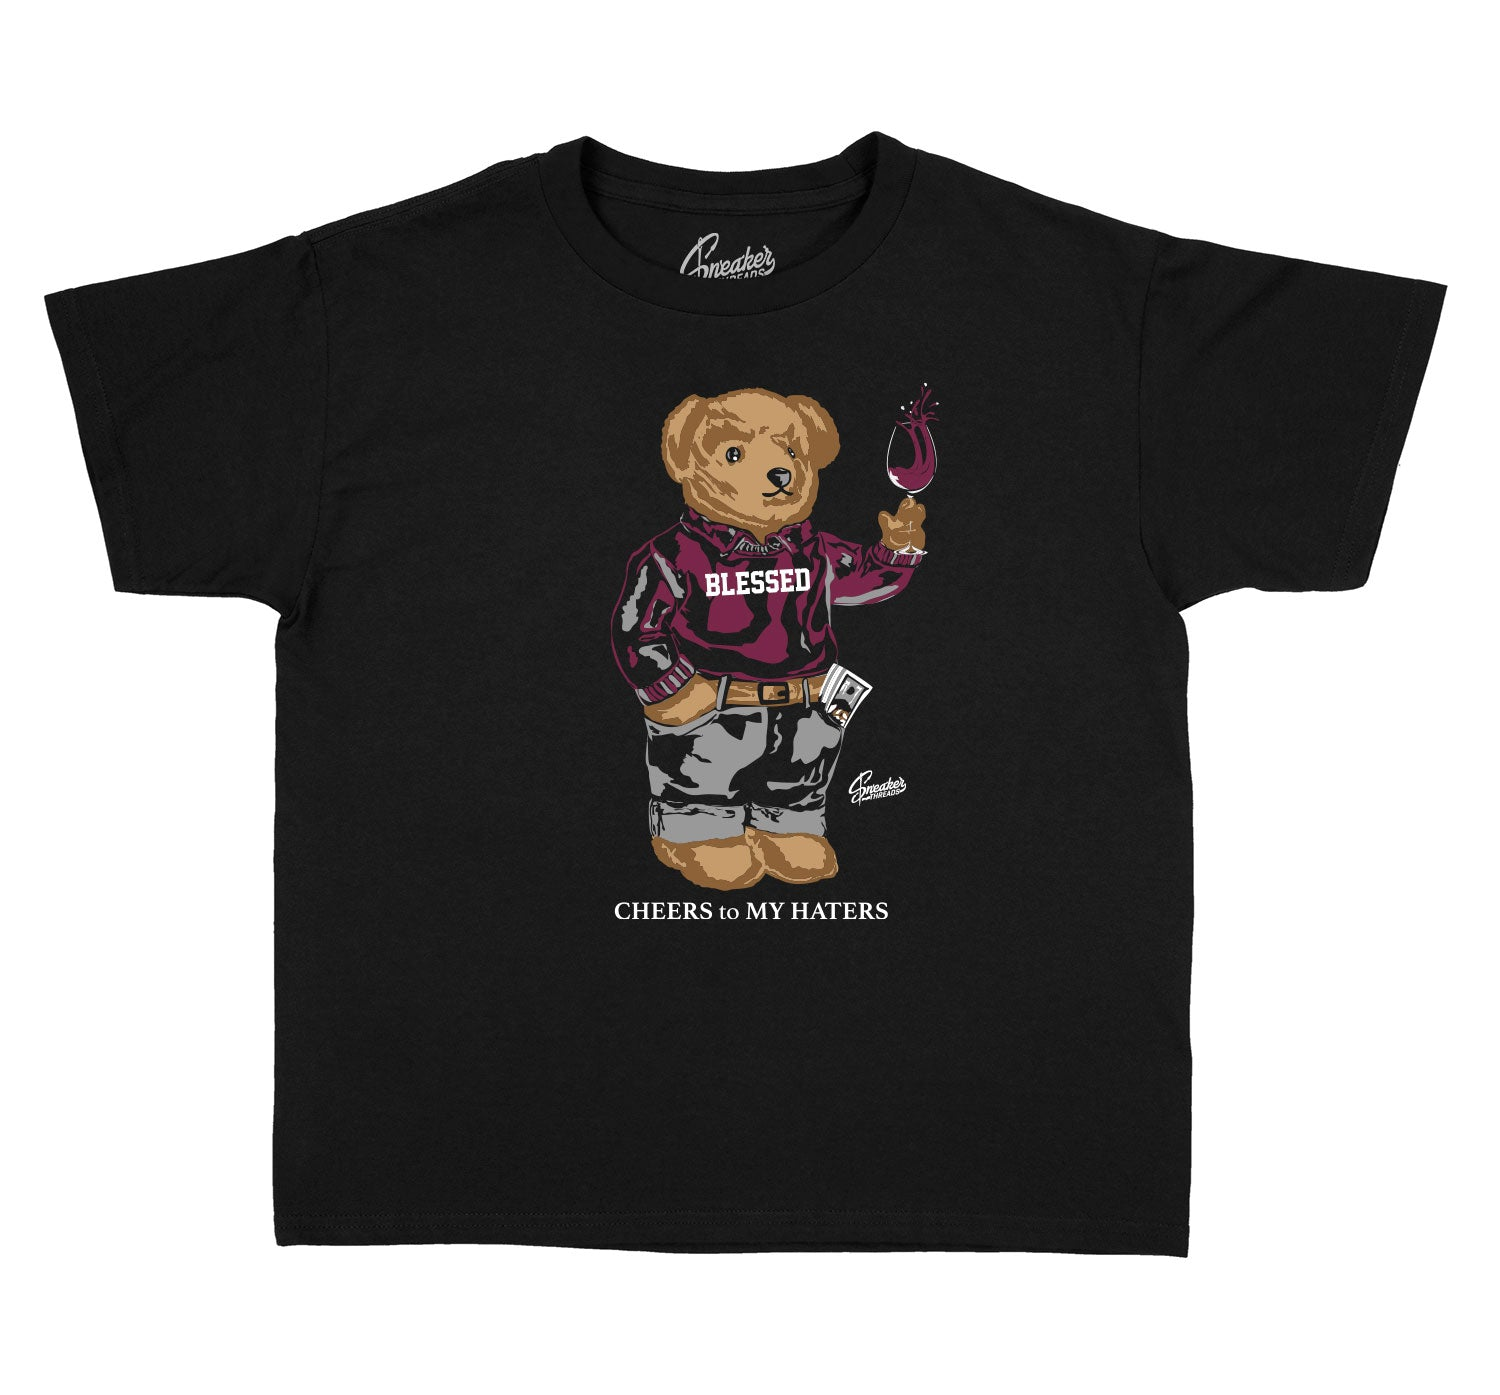 Kids Singles Day 6 Shirt - Cheers Bear - Black